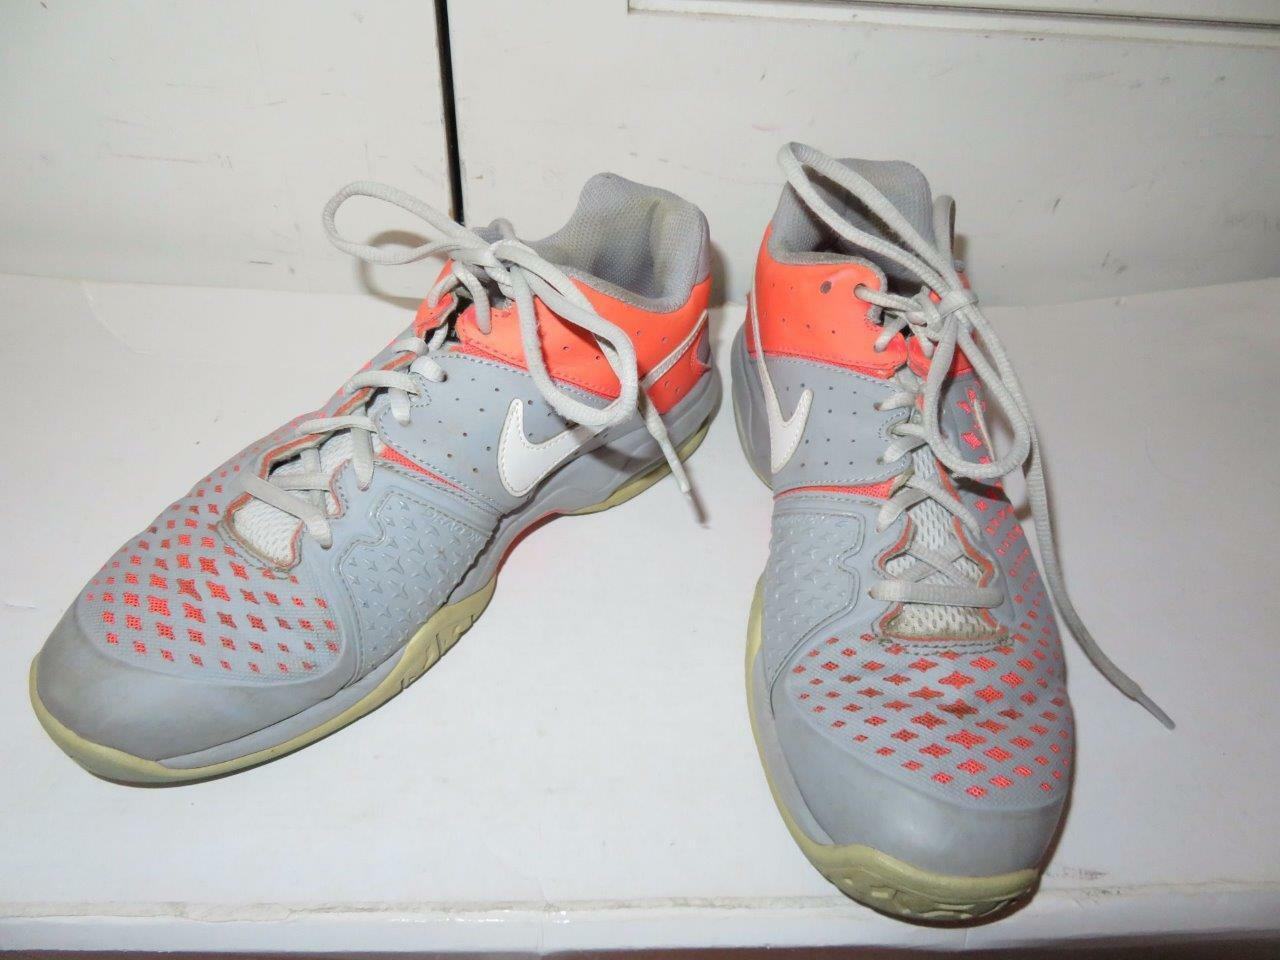 WOMENS NIKE AIR CAGE ADVANTAGE PINK AND GRAY SNEAKER SIZE 8.5